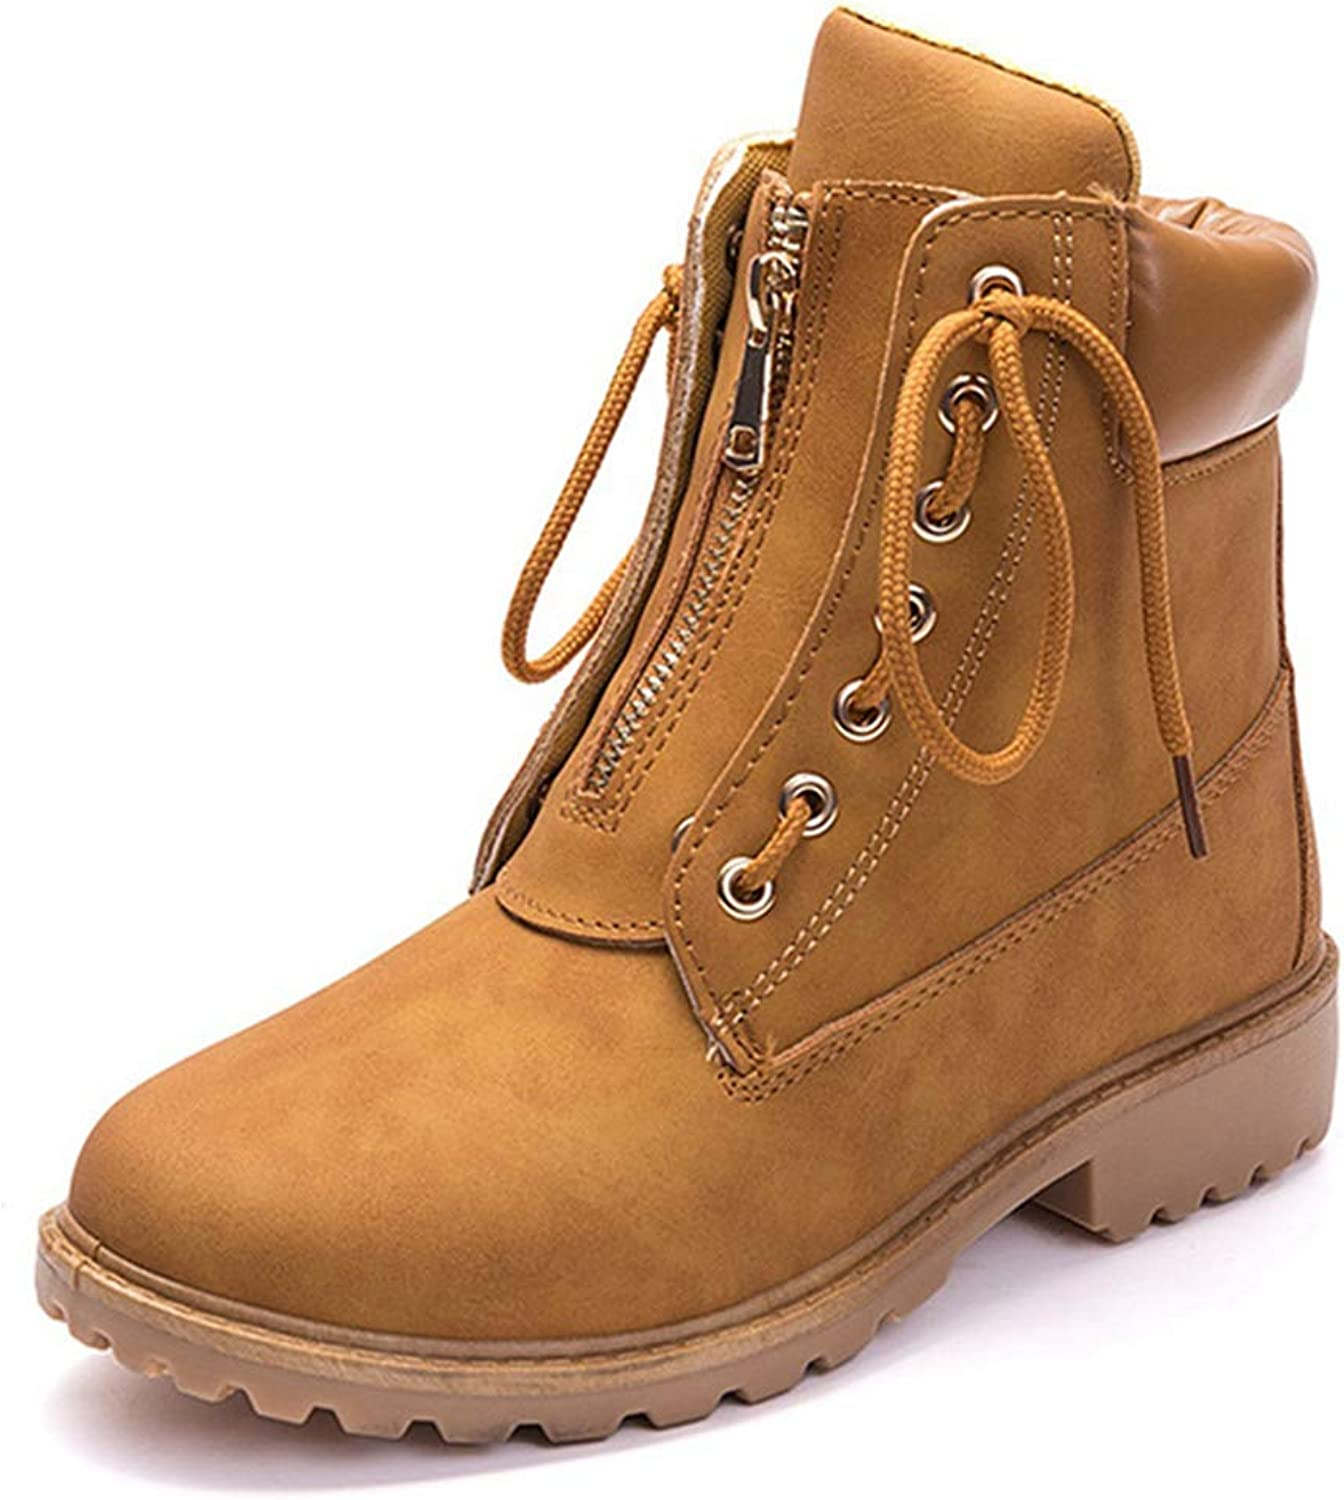 Hoxekle Ankle Boot Low Heel Top Zipper Lace Up Women Short Plush Snow Outdoor Casual Hiking Boots